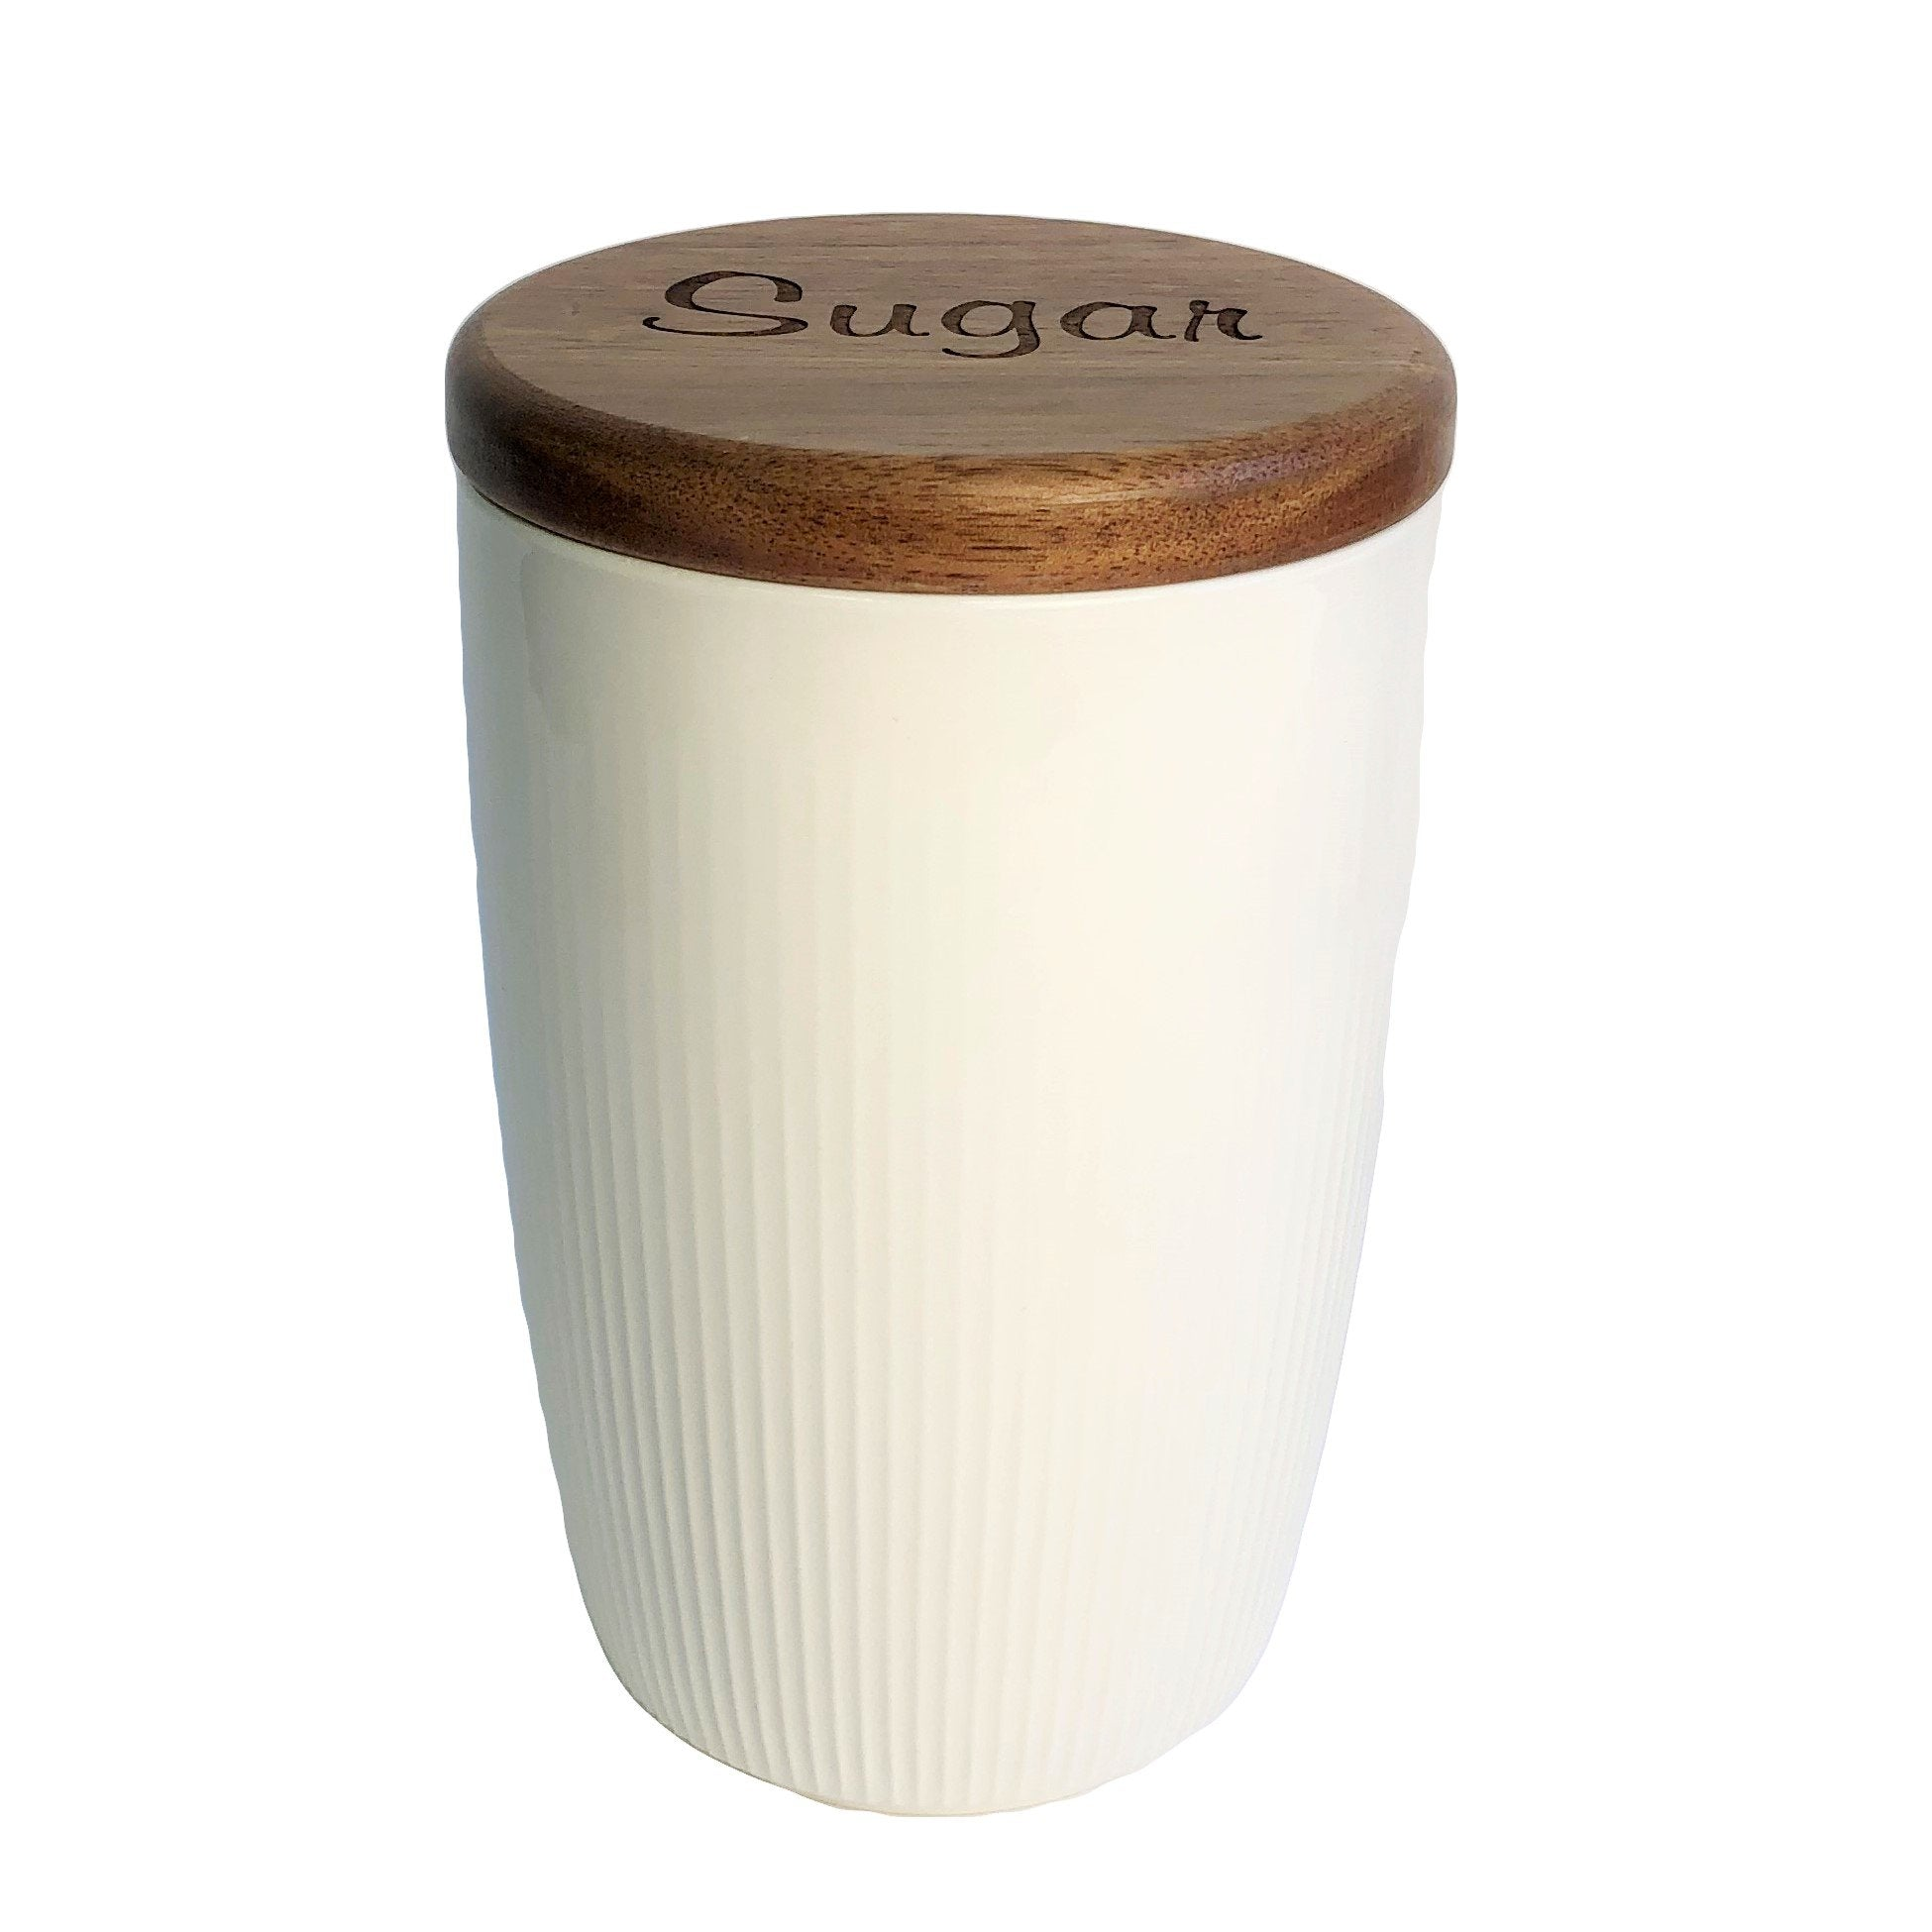 Ceramic kitchen canister 20 oz